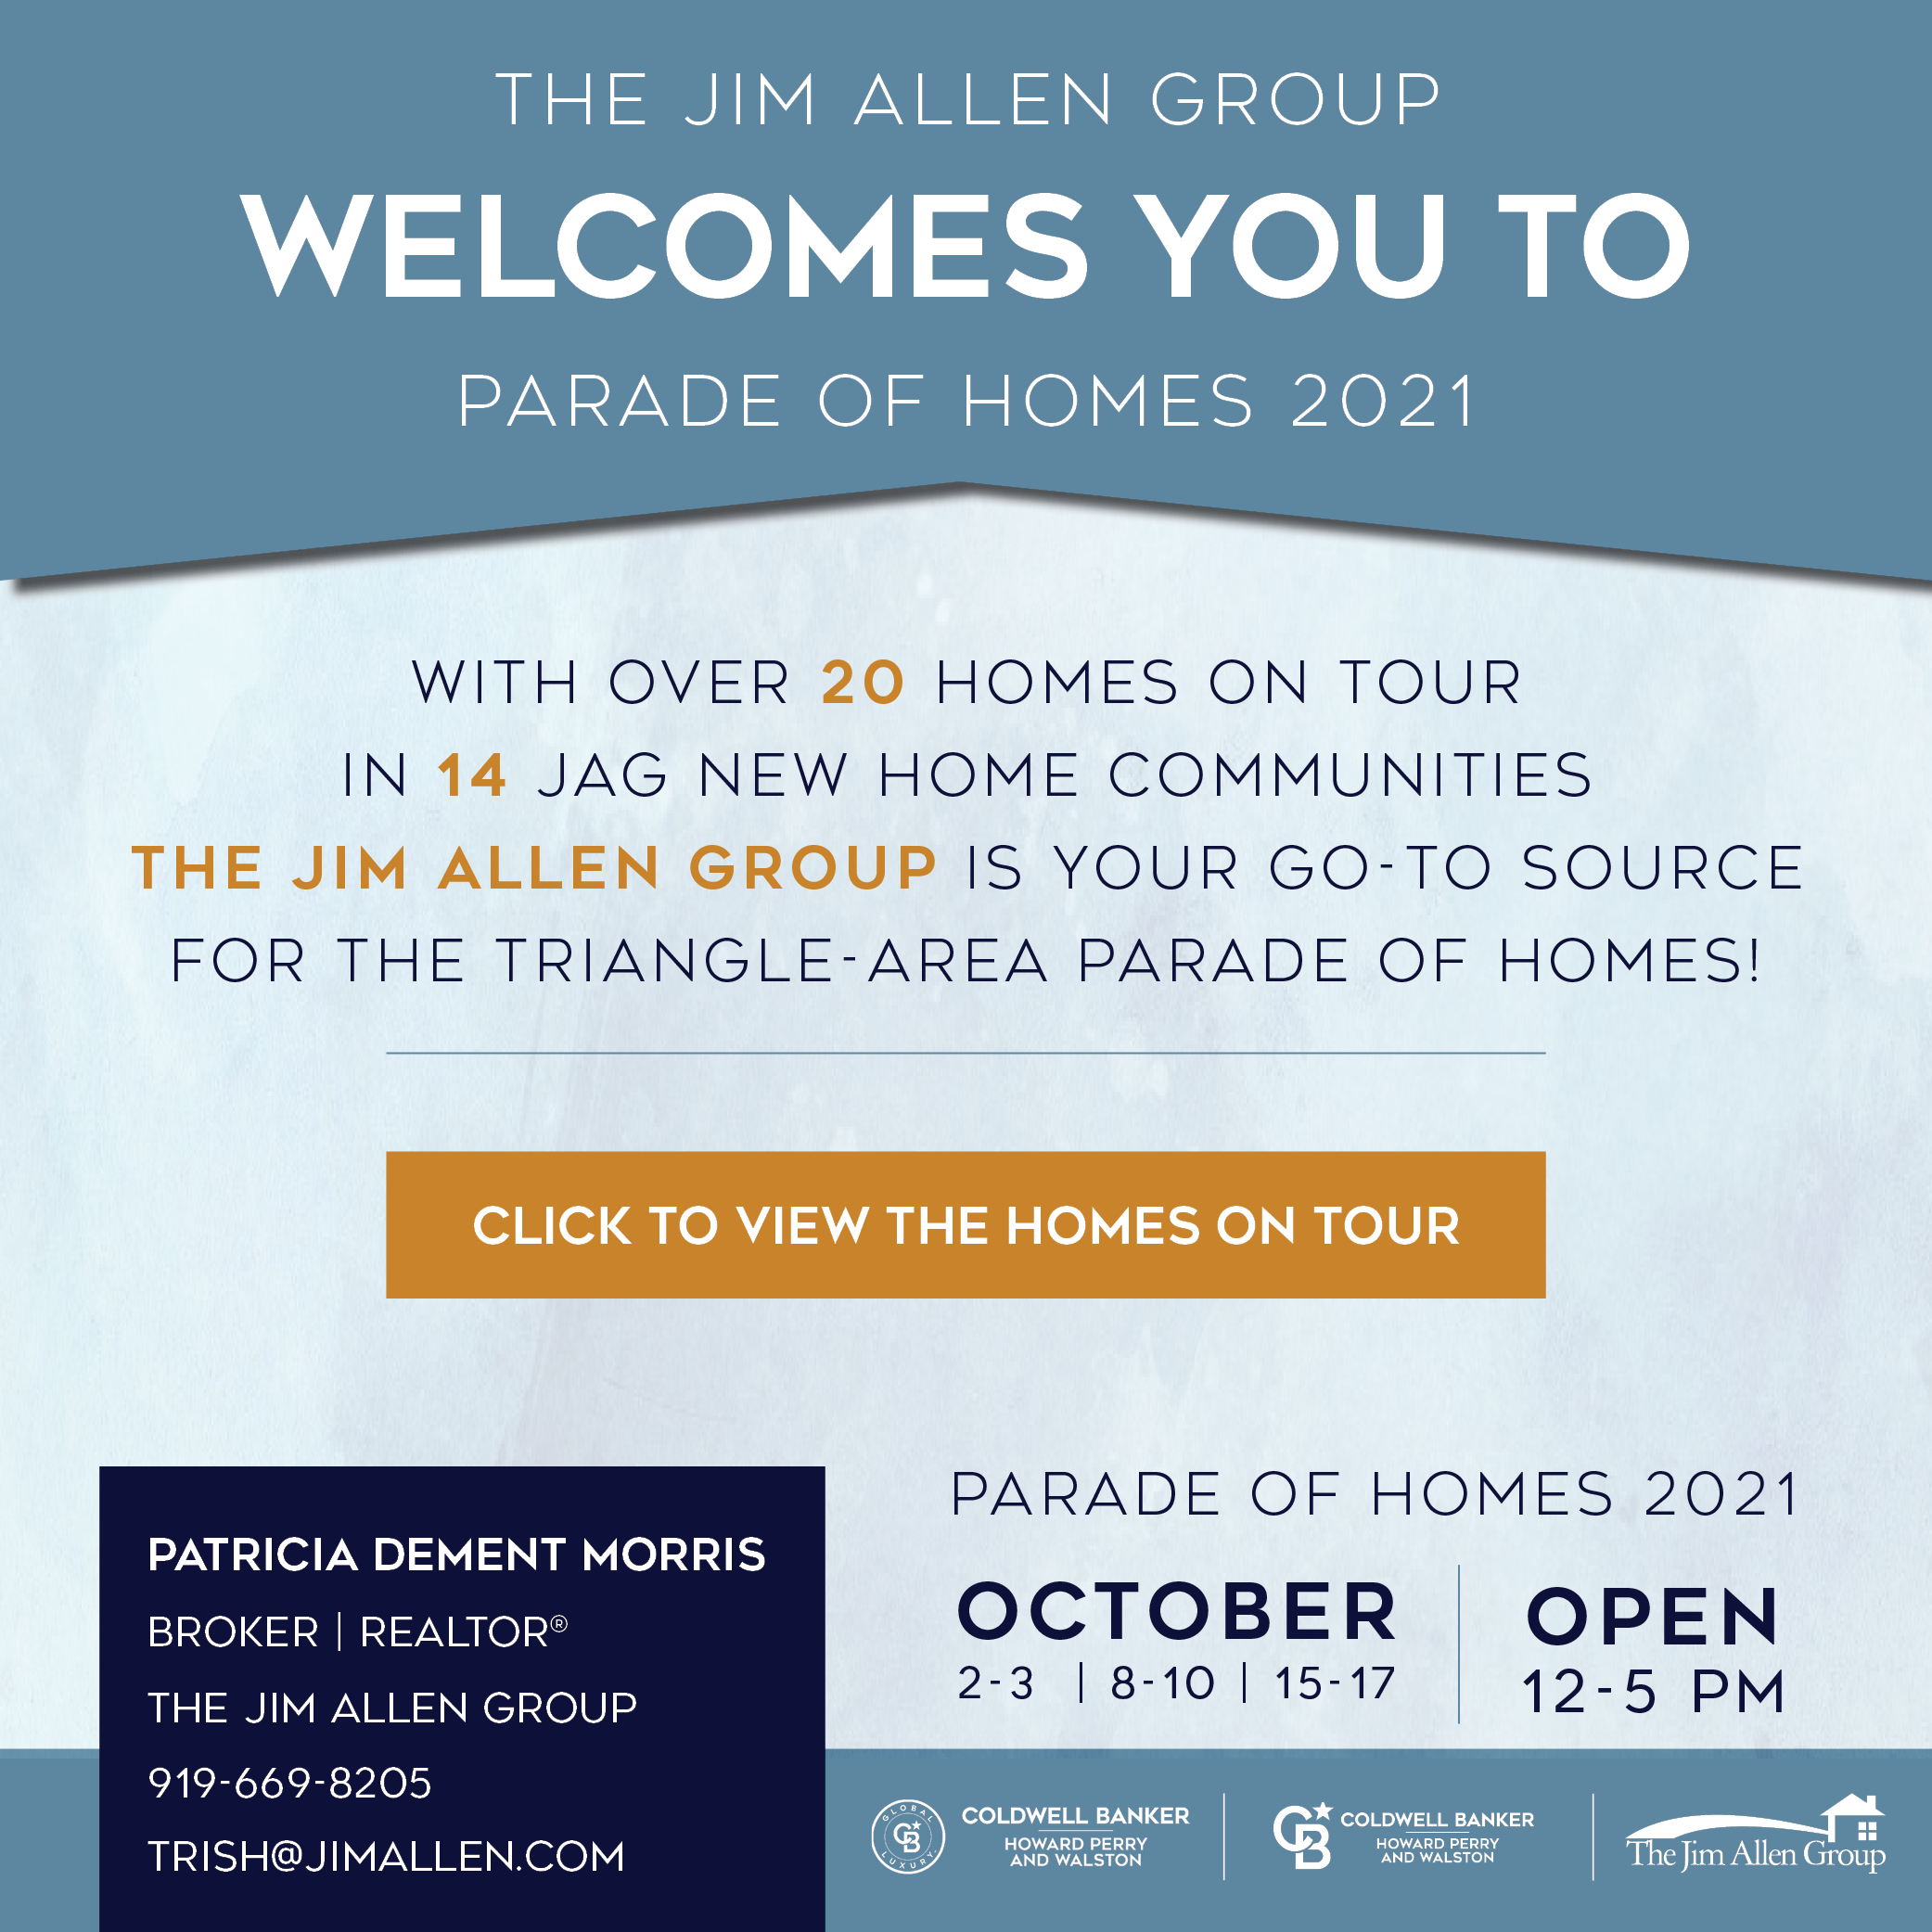 Patrica Dement Morris   Parade of Homes 2021   The Jim Allen Group